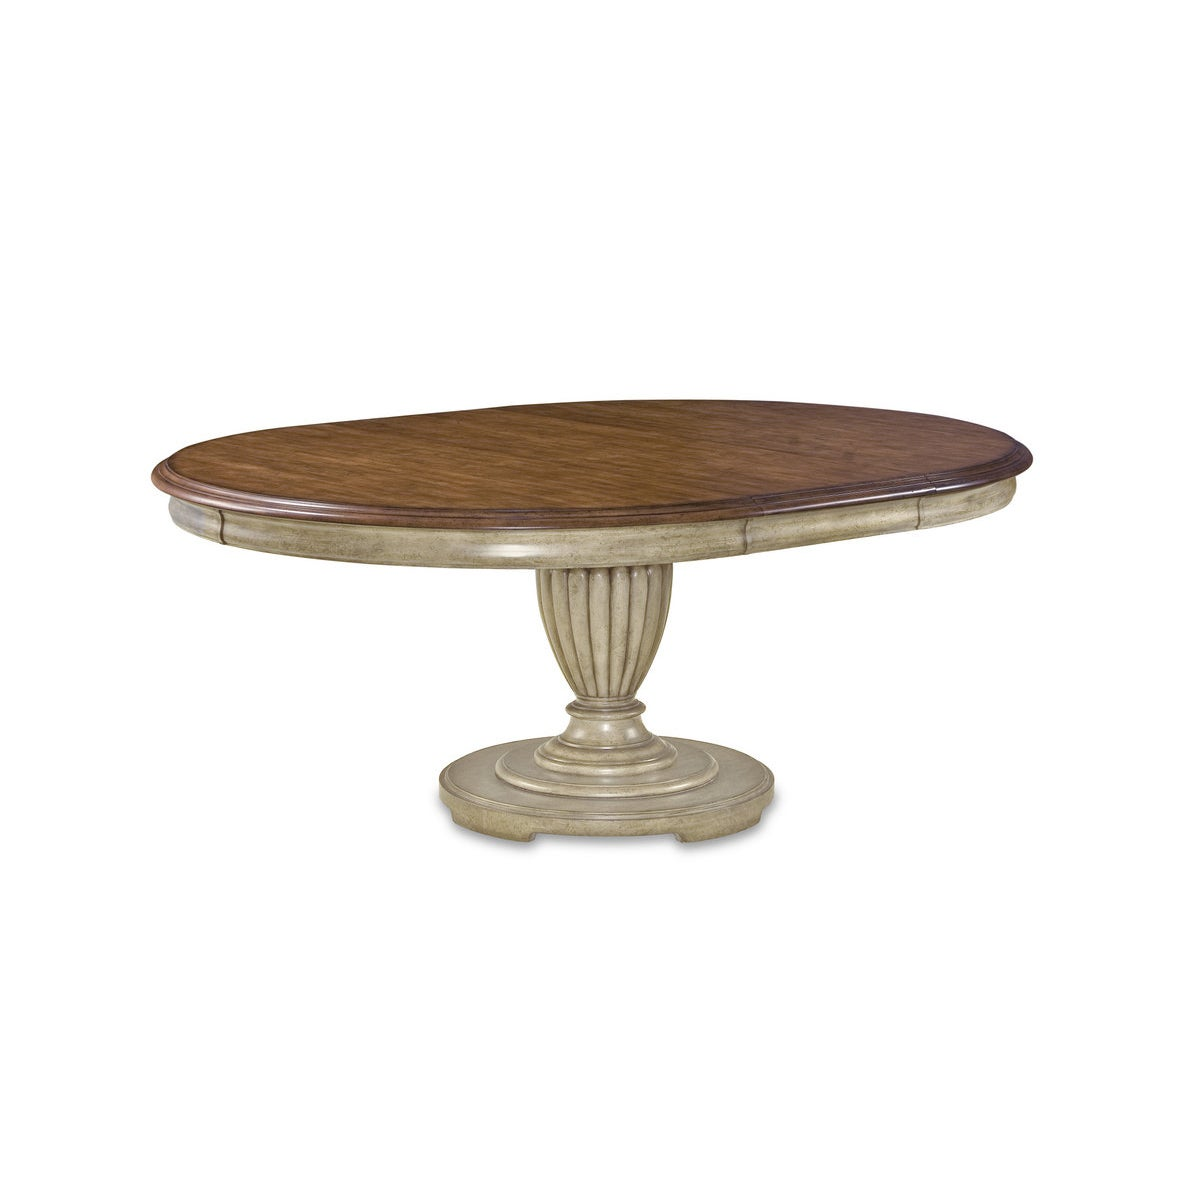 Round Expandable Table Overstock Shopping Great Deals On ART